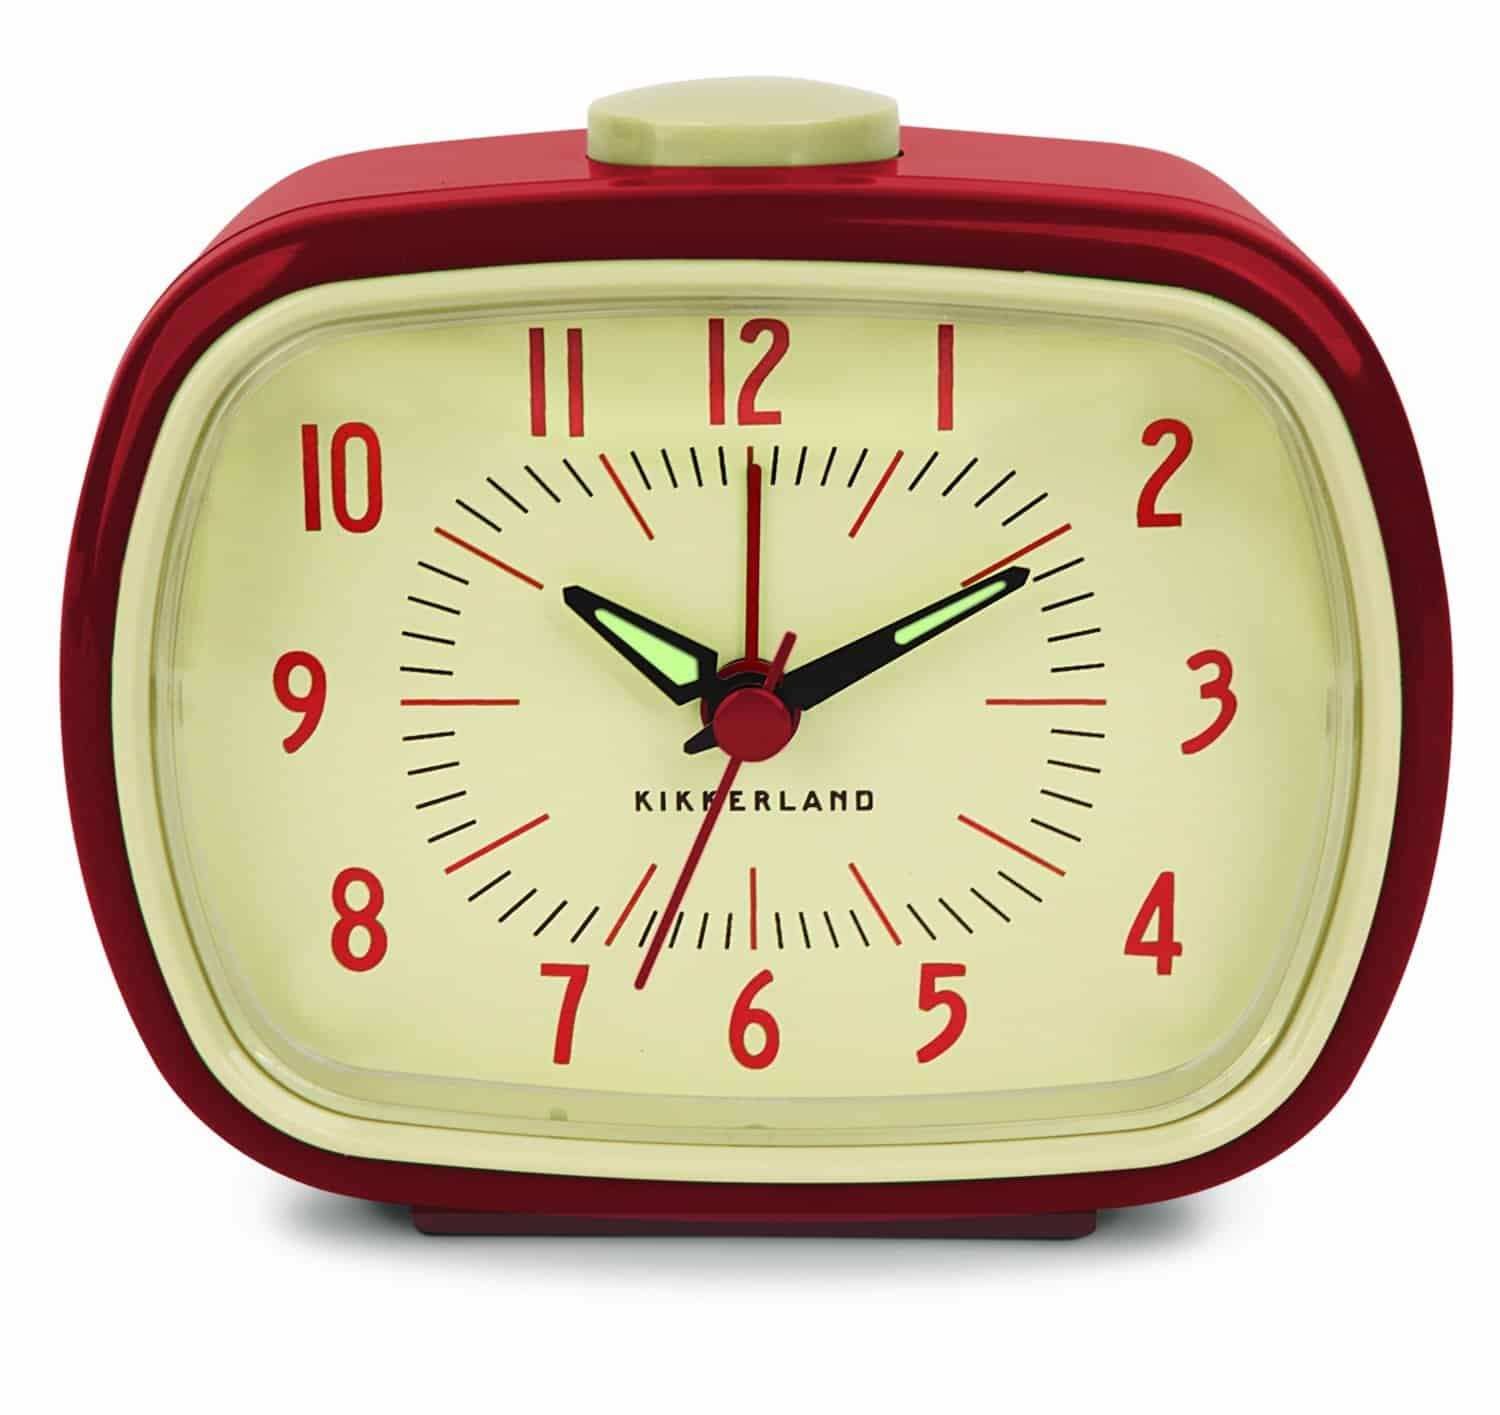 Kikkerland Retro Alarm Clock Red Cool Gift Idea for Old People